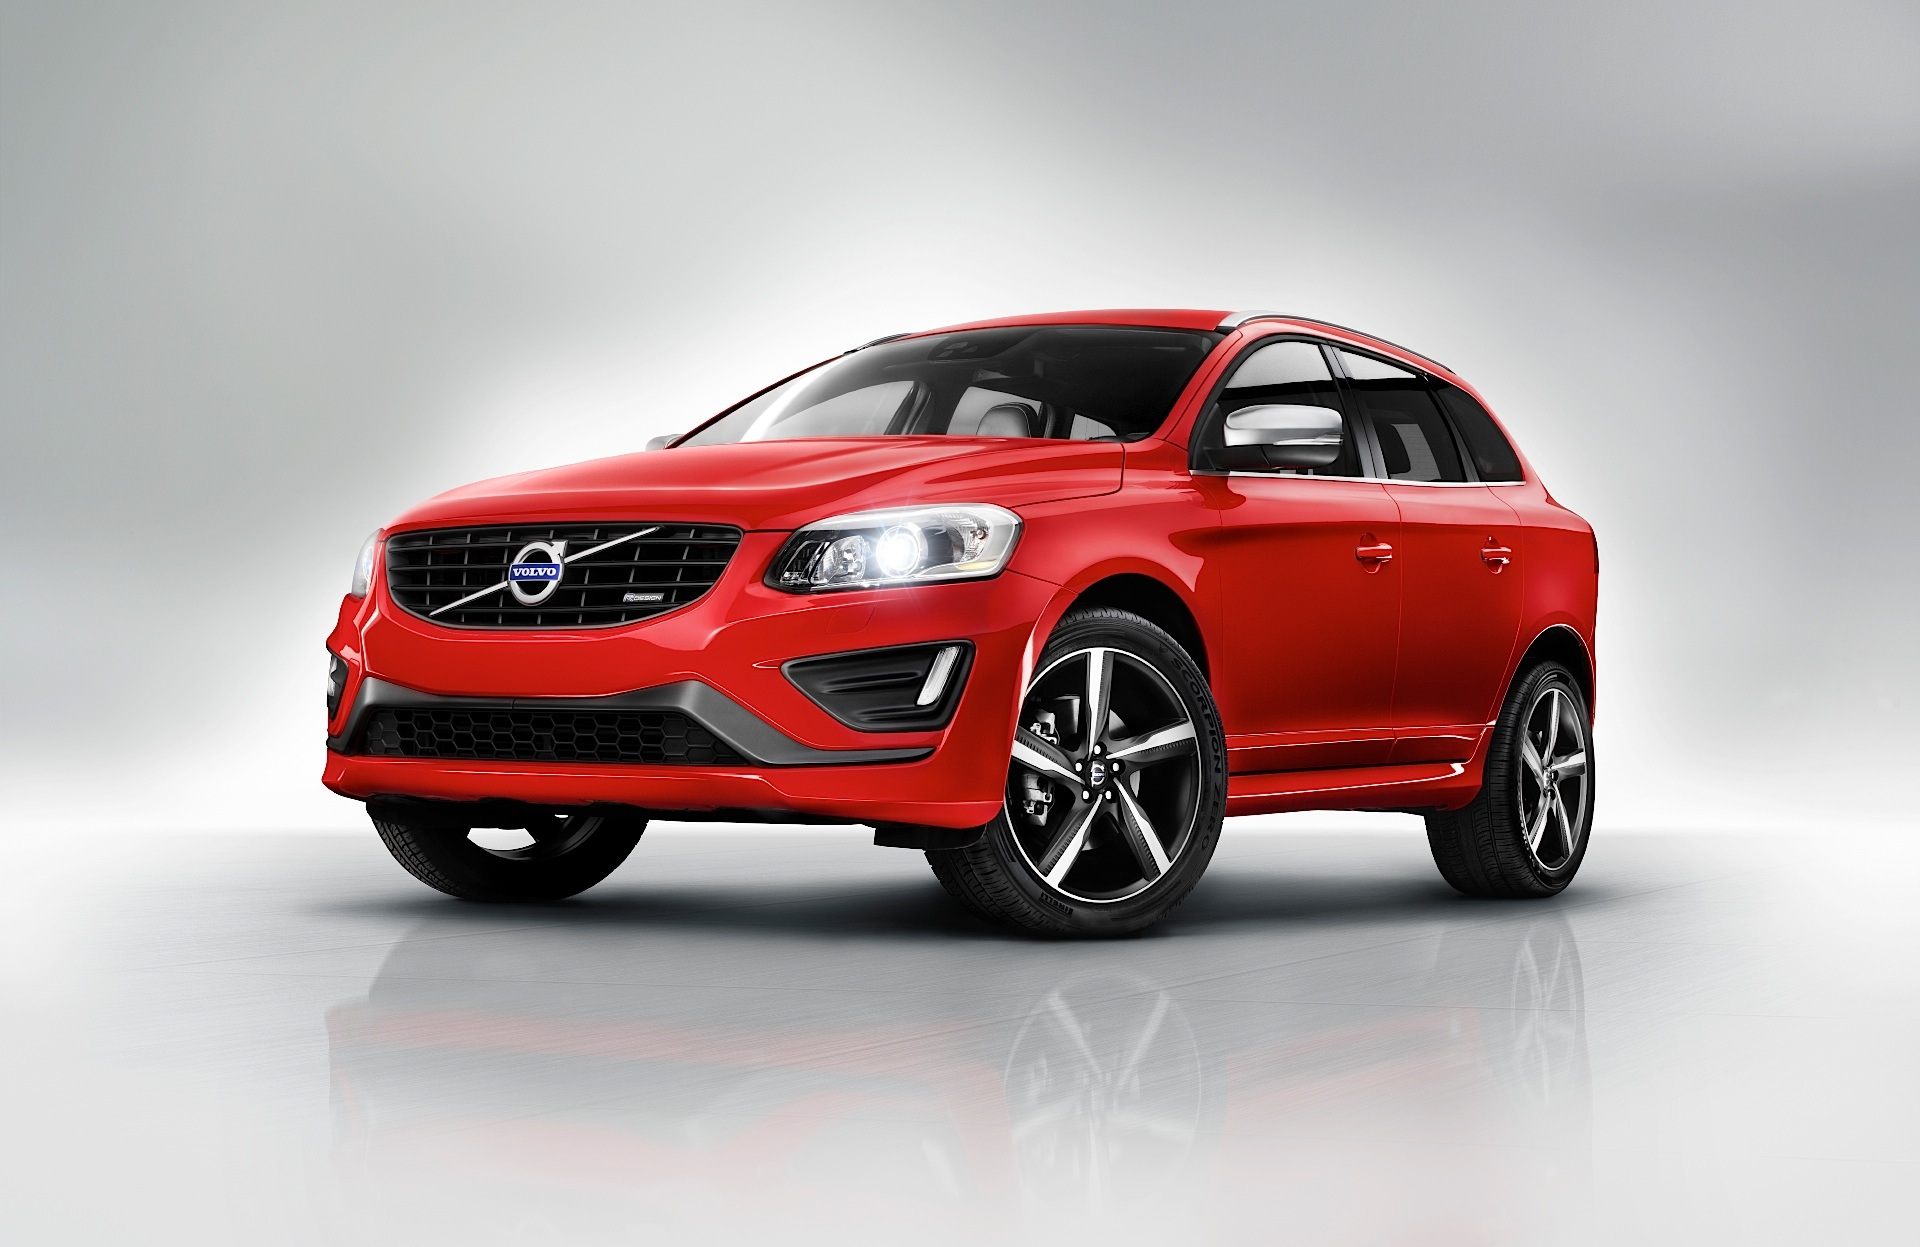 volvo xc60 specs photos 2008 2009 2010 2011 2012 2013 autoevolution. Black Bedroom Furniture Sets. Home Design Ideas